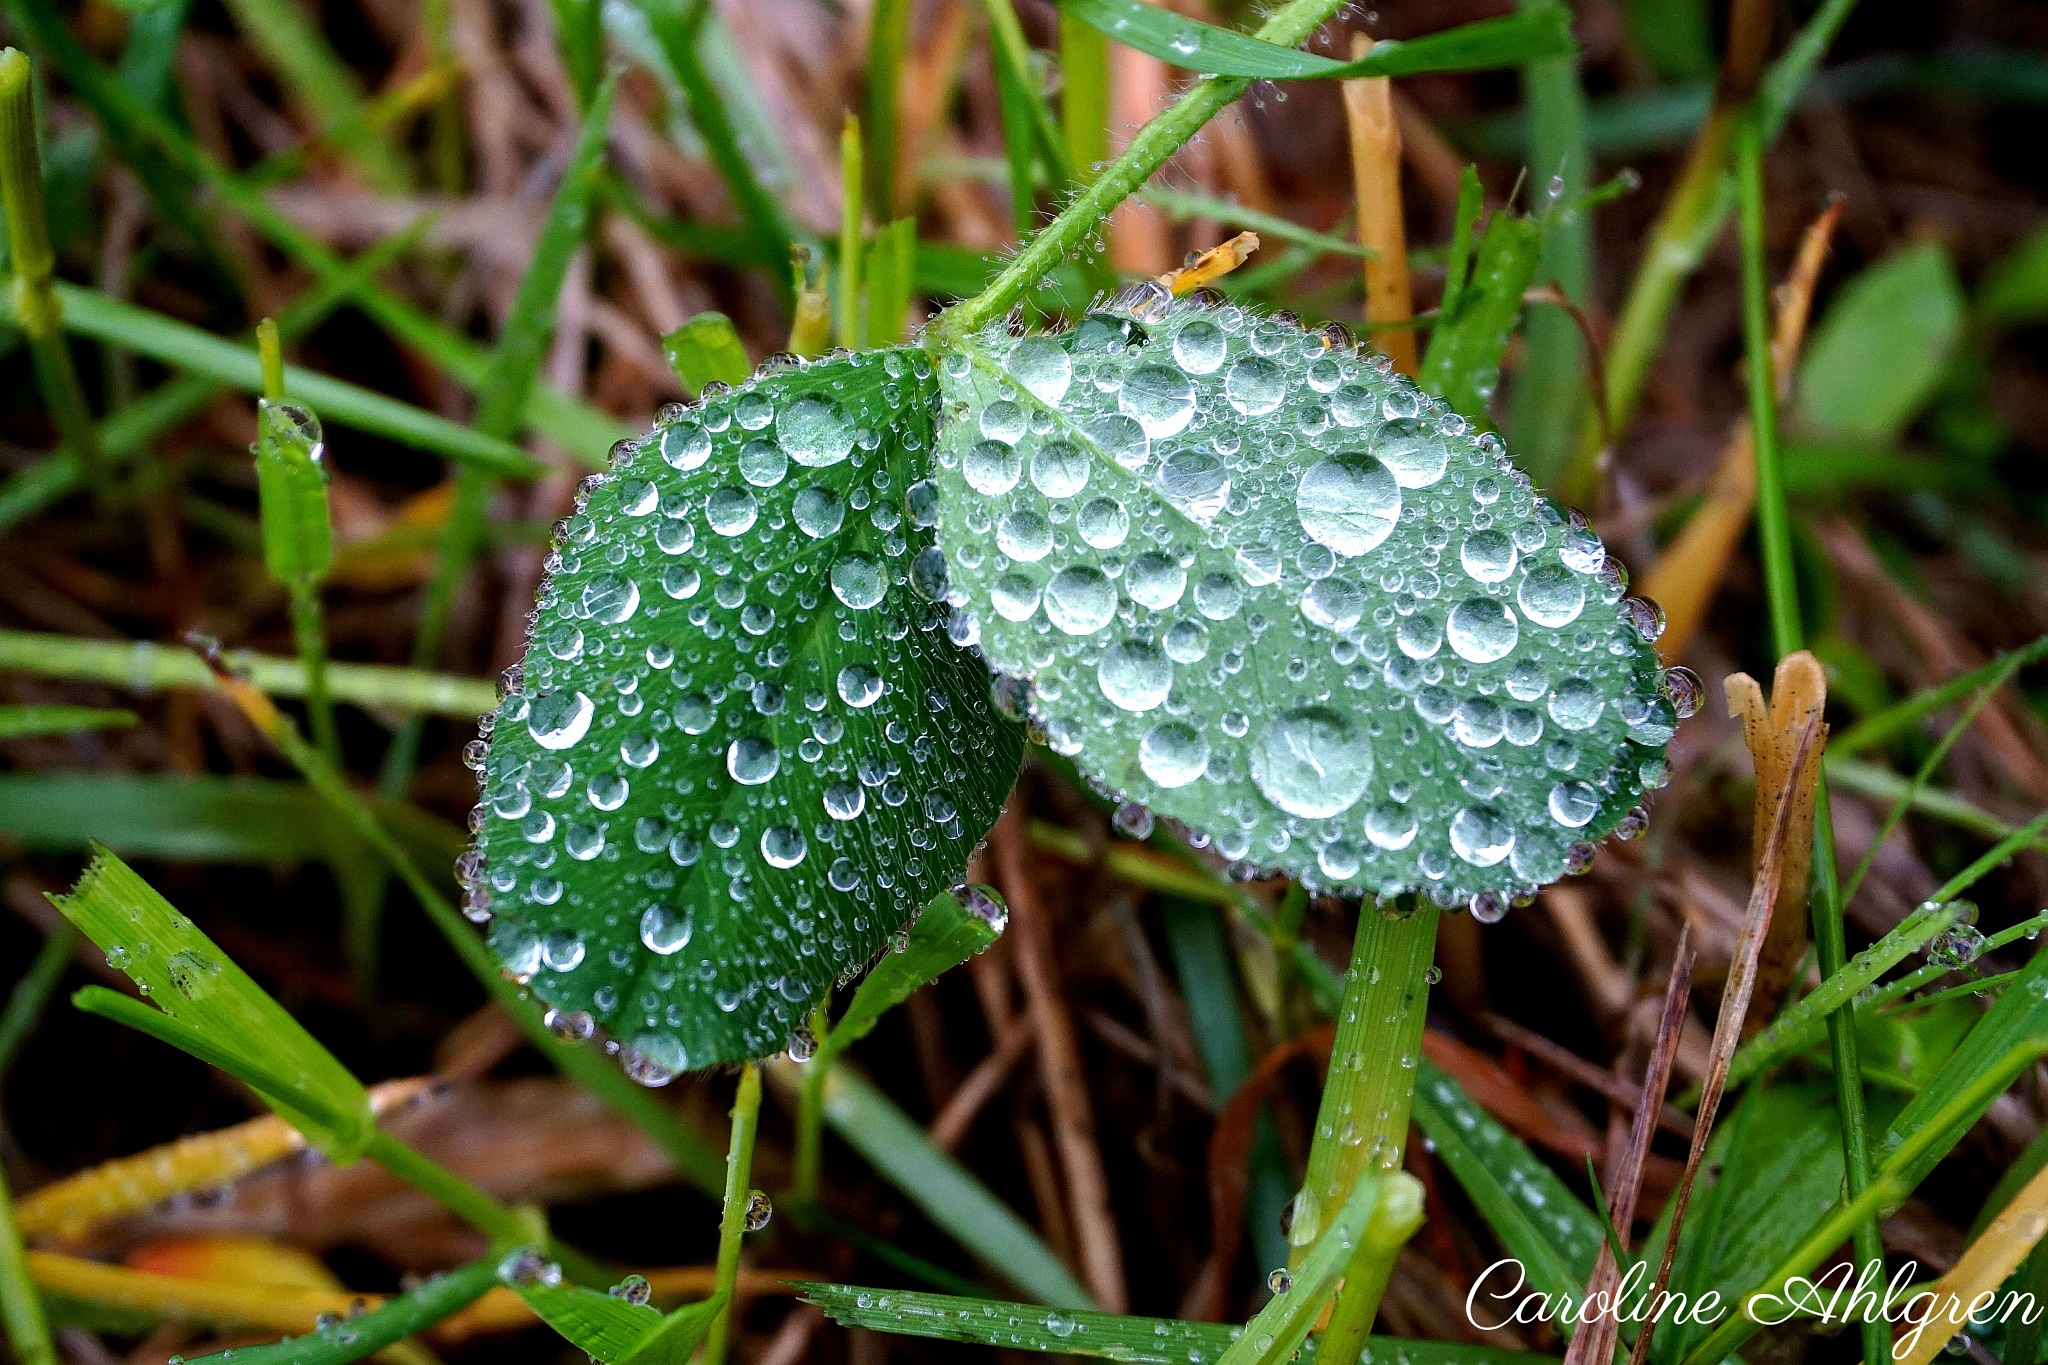 Raindrops can turn into a waterfall by Caroline Ahlgren